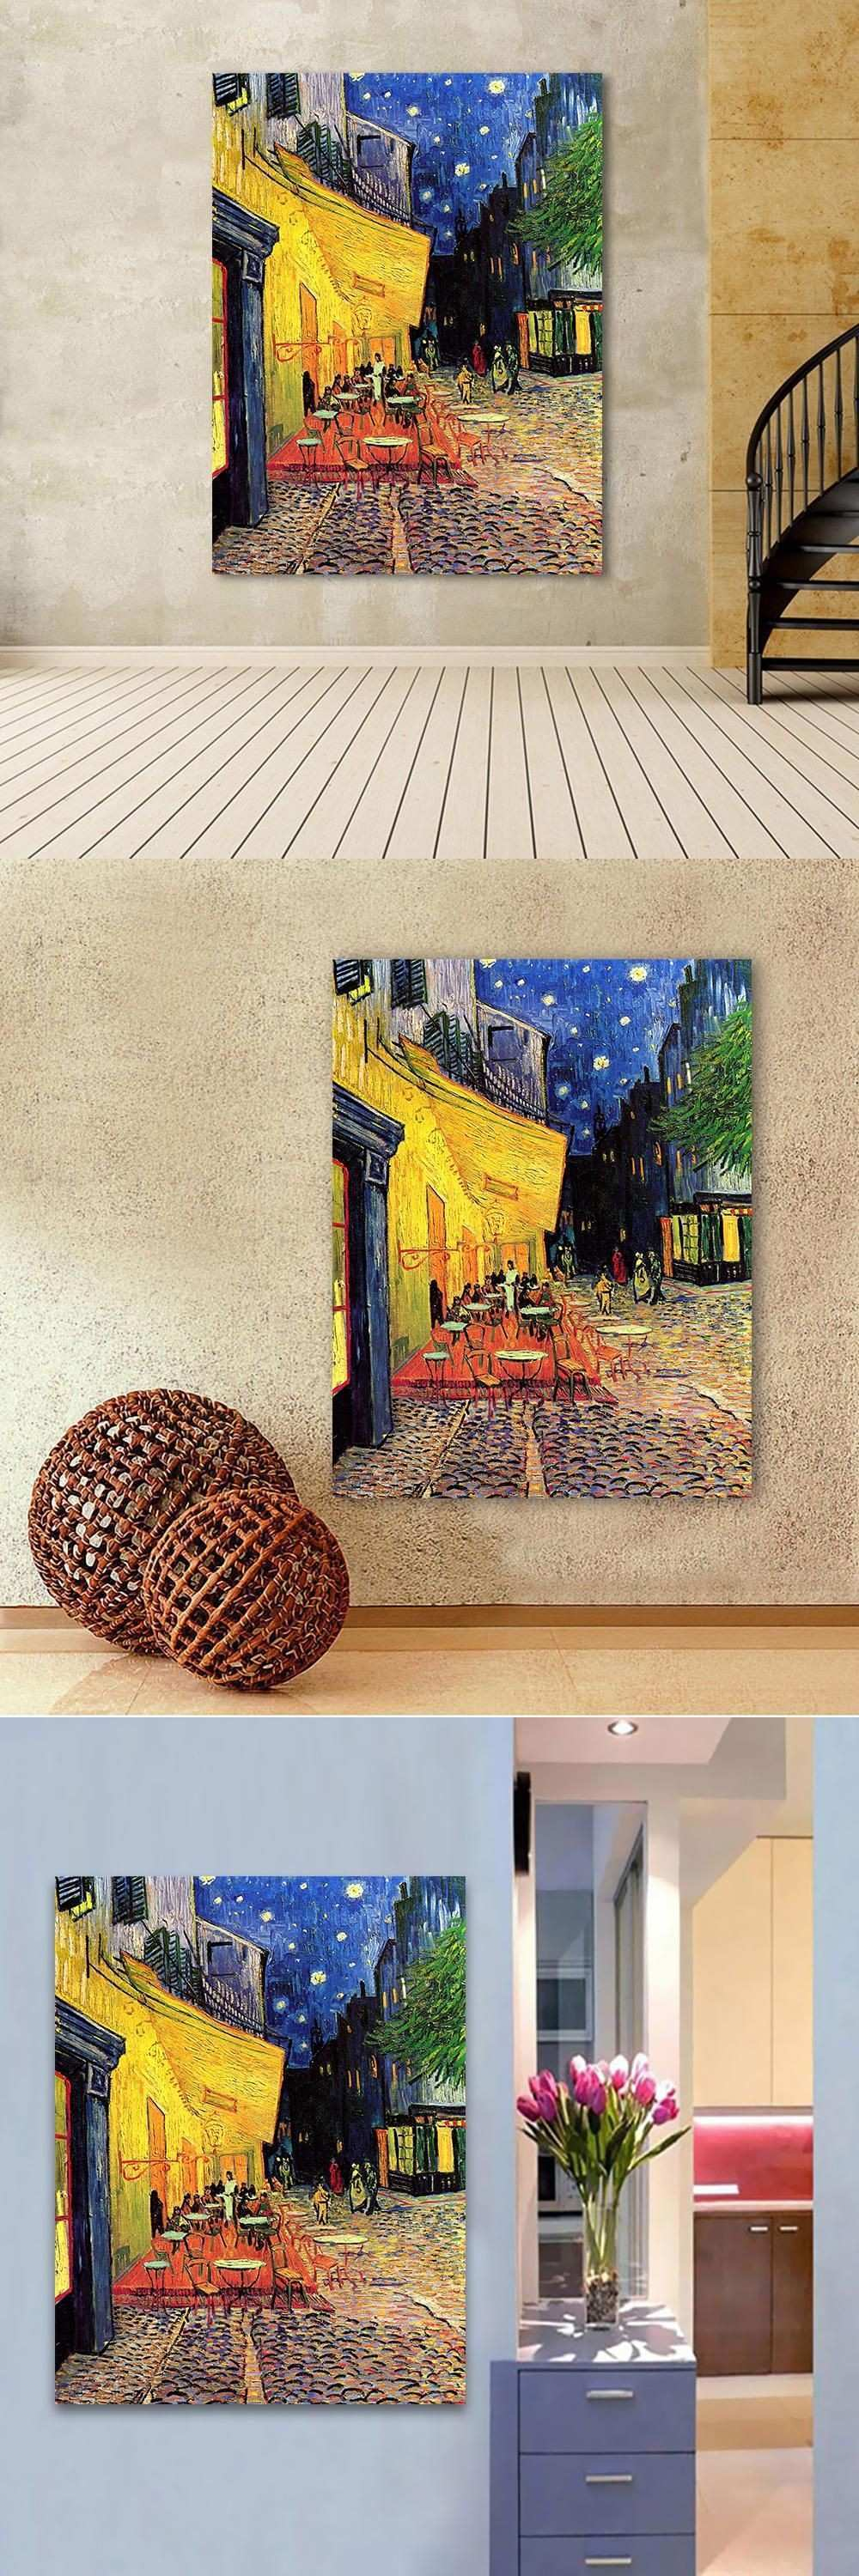 HDARTISAN Canvas Art Wall For Living Room Vincent Van Gogh